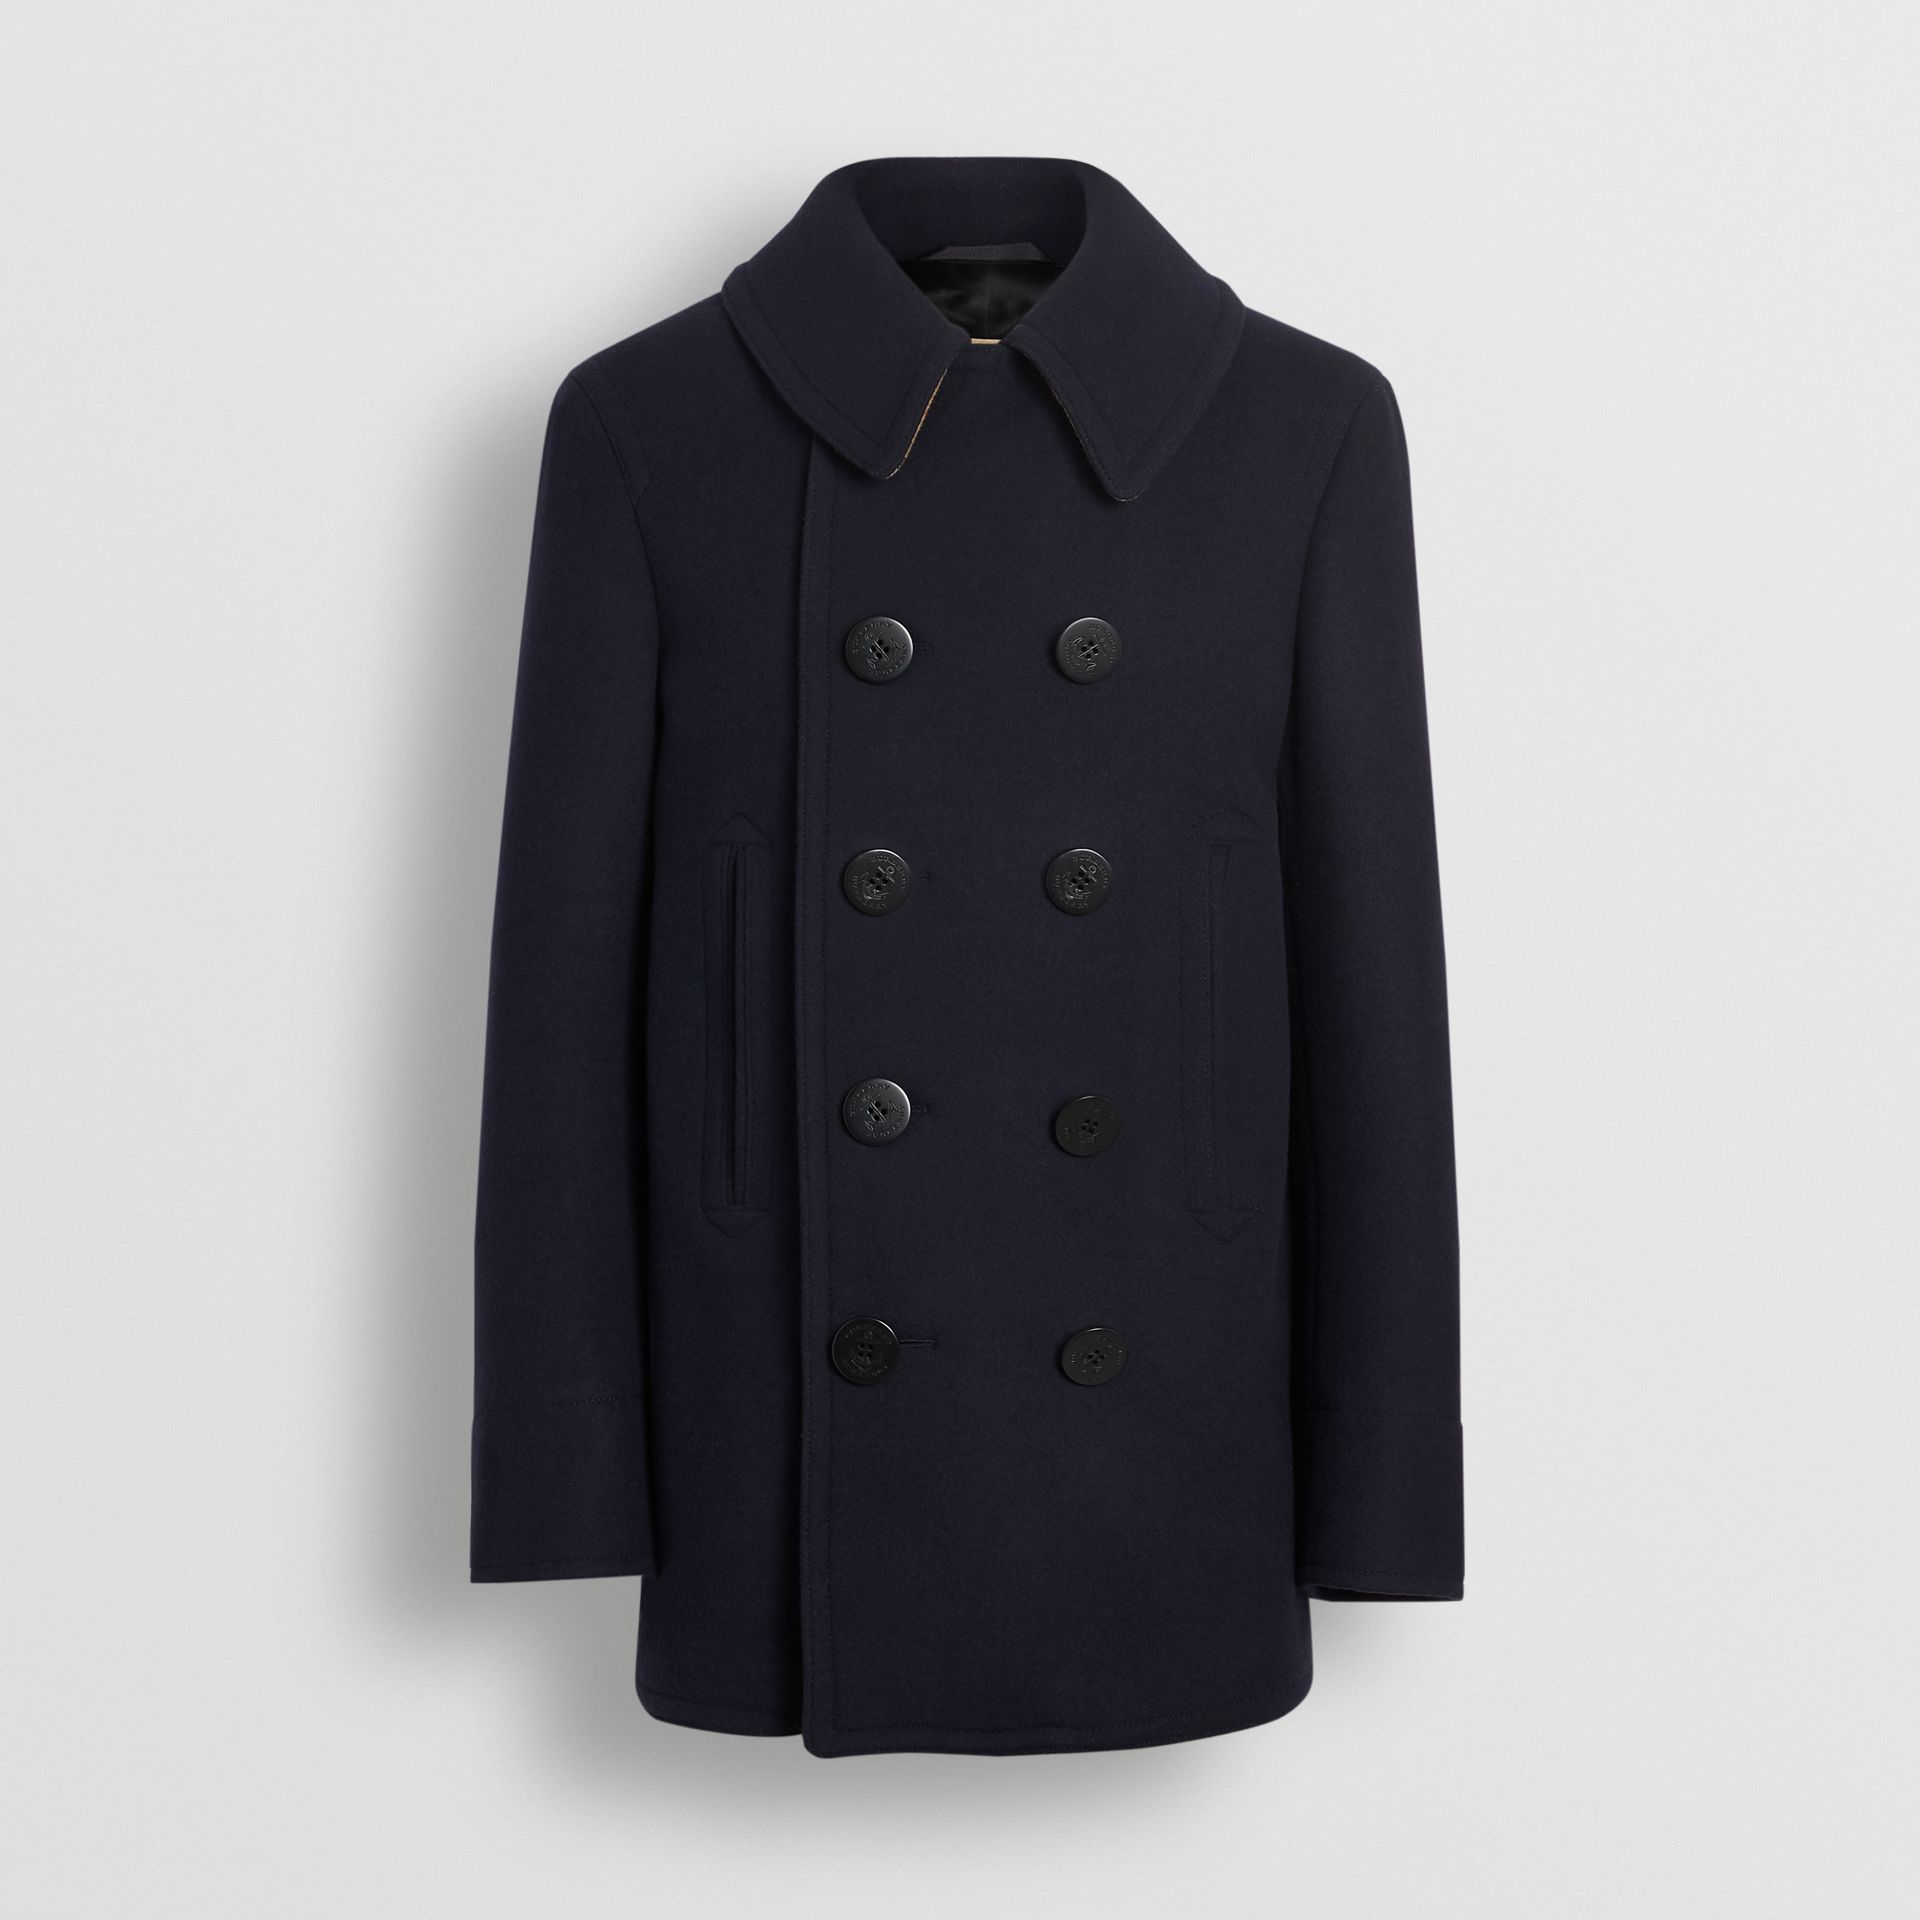 Wool Blend Pea Coat in Navy - Men | Burberry - gallery image 3